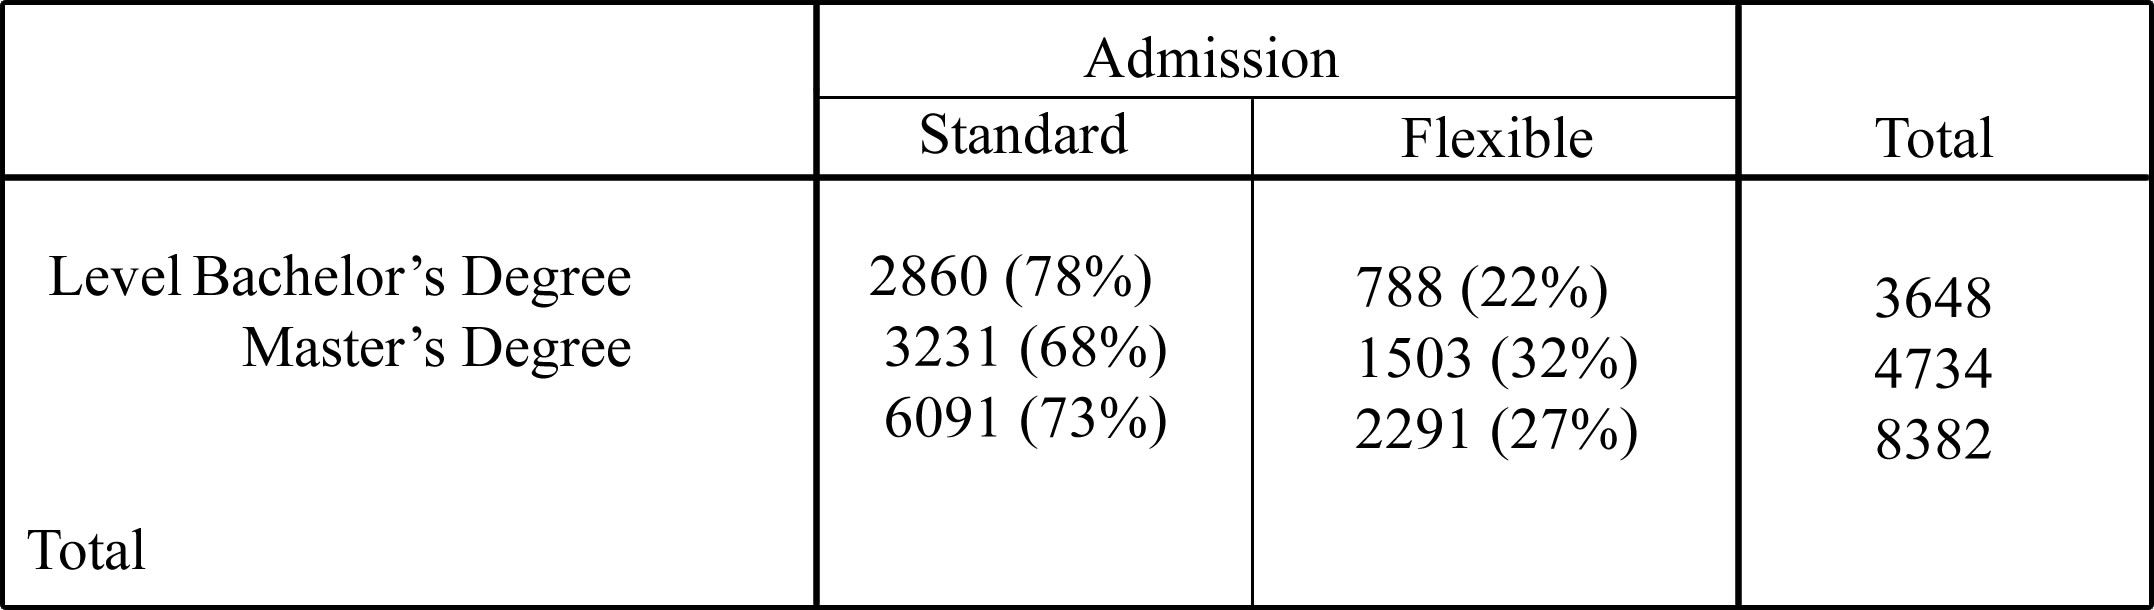 Table 2. Admission Type by Degree Level.